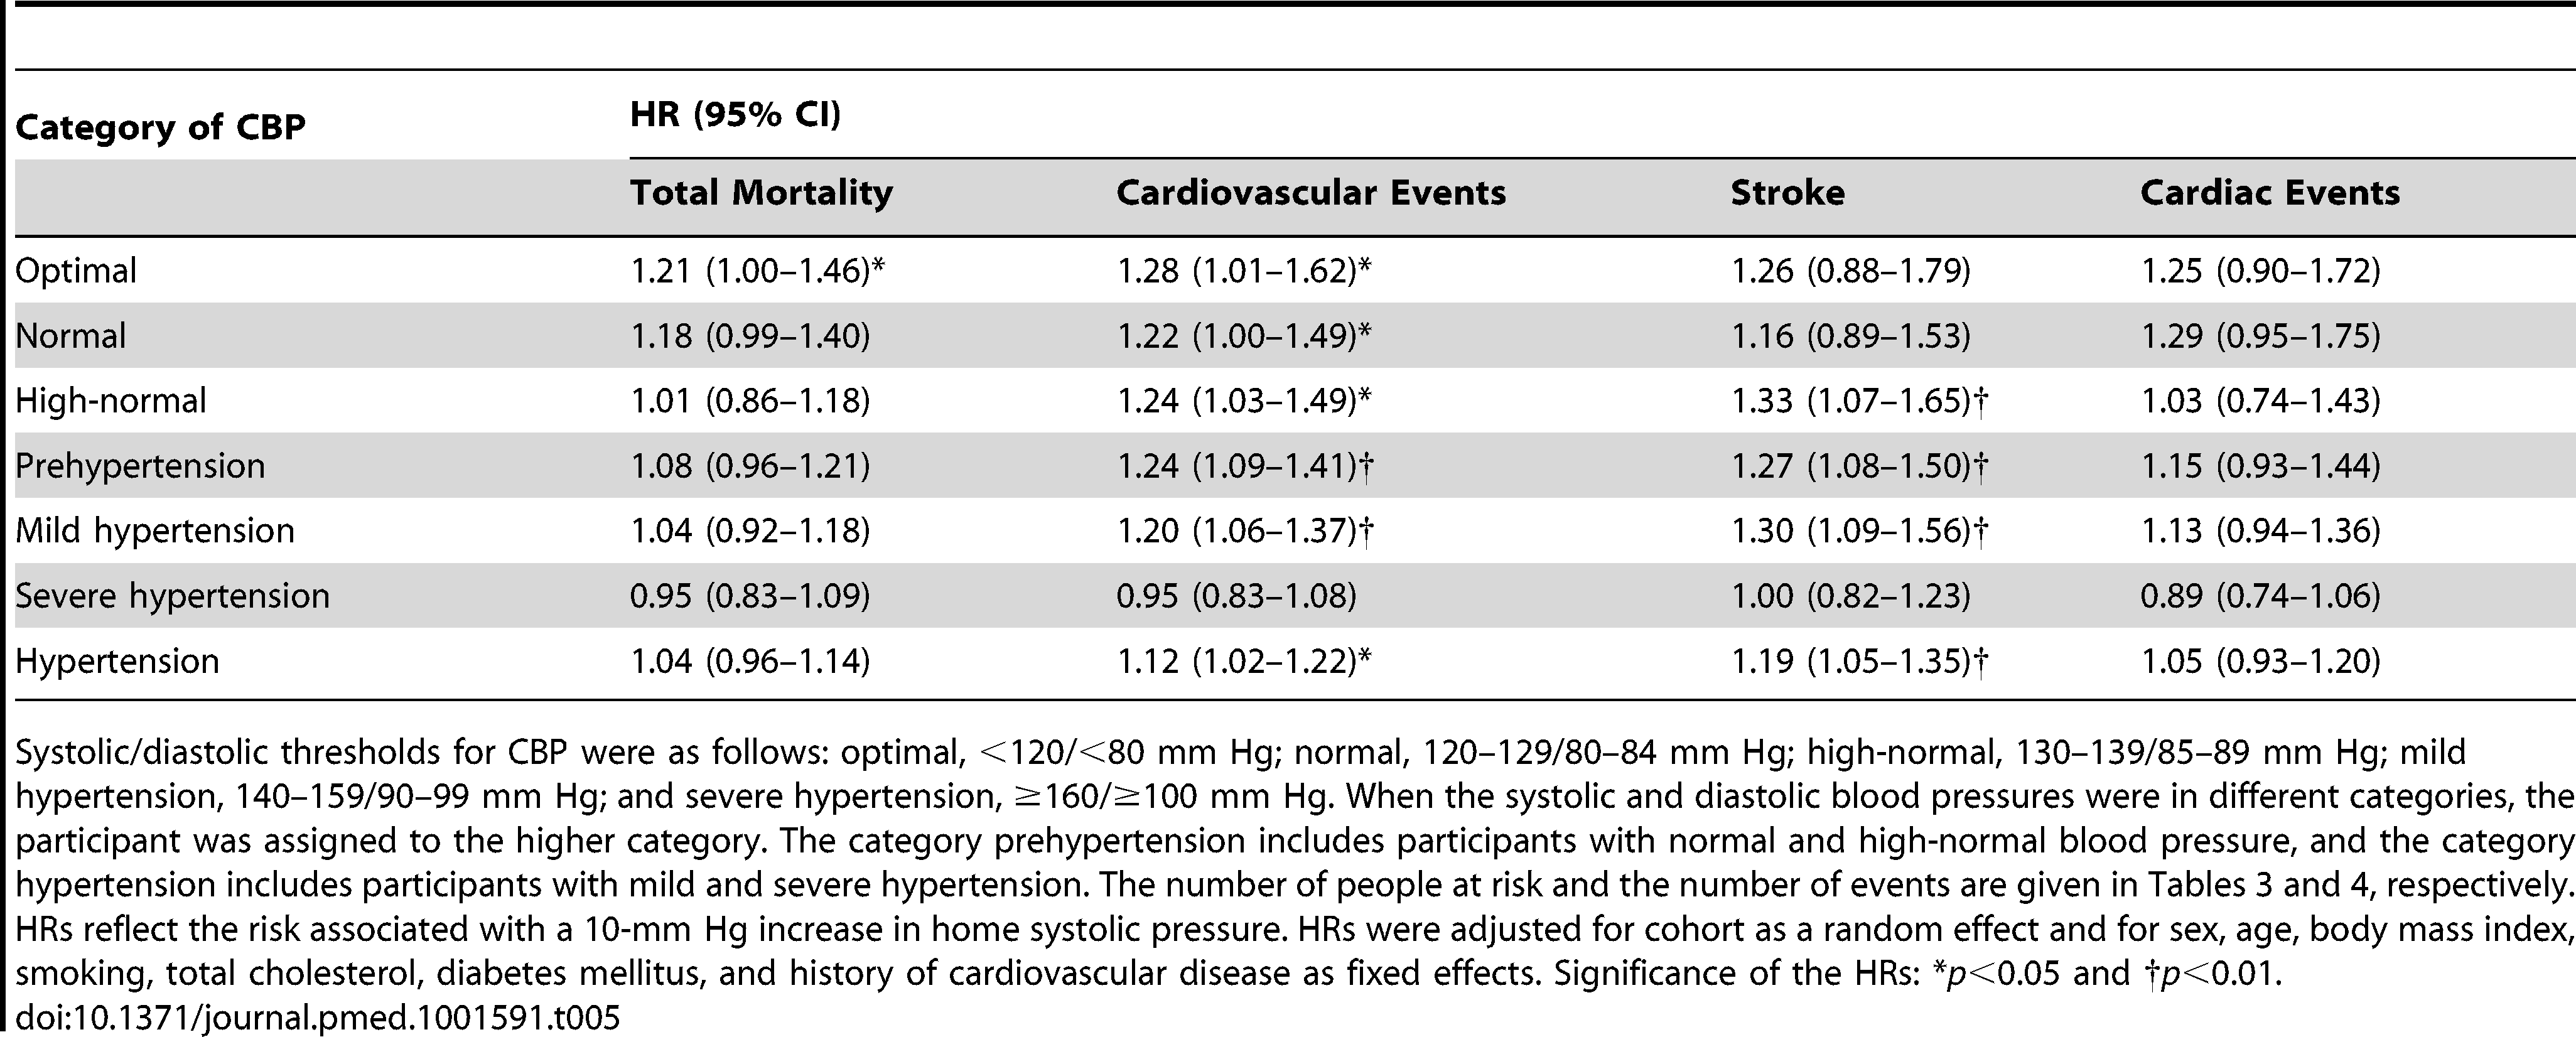 Standardized hazard ratios associated with systolic home blood pressure by category of conventional blood pressure.